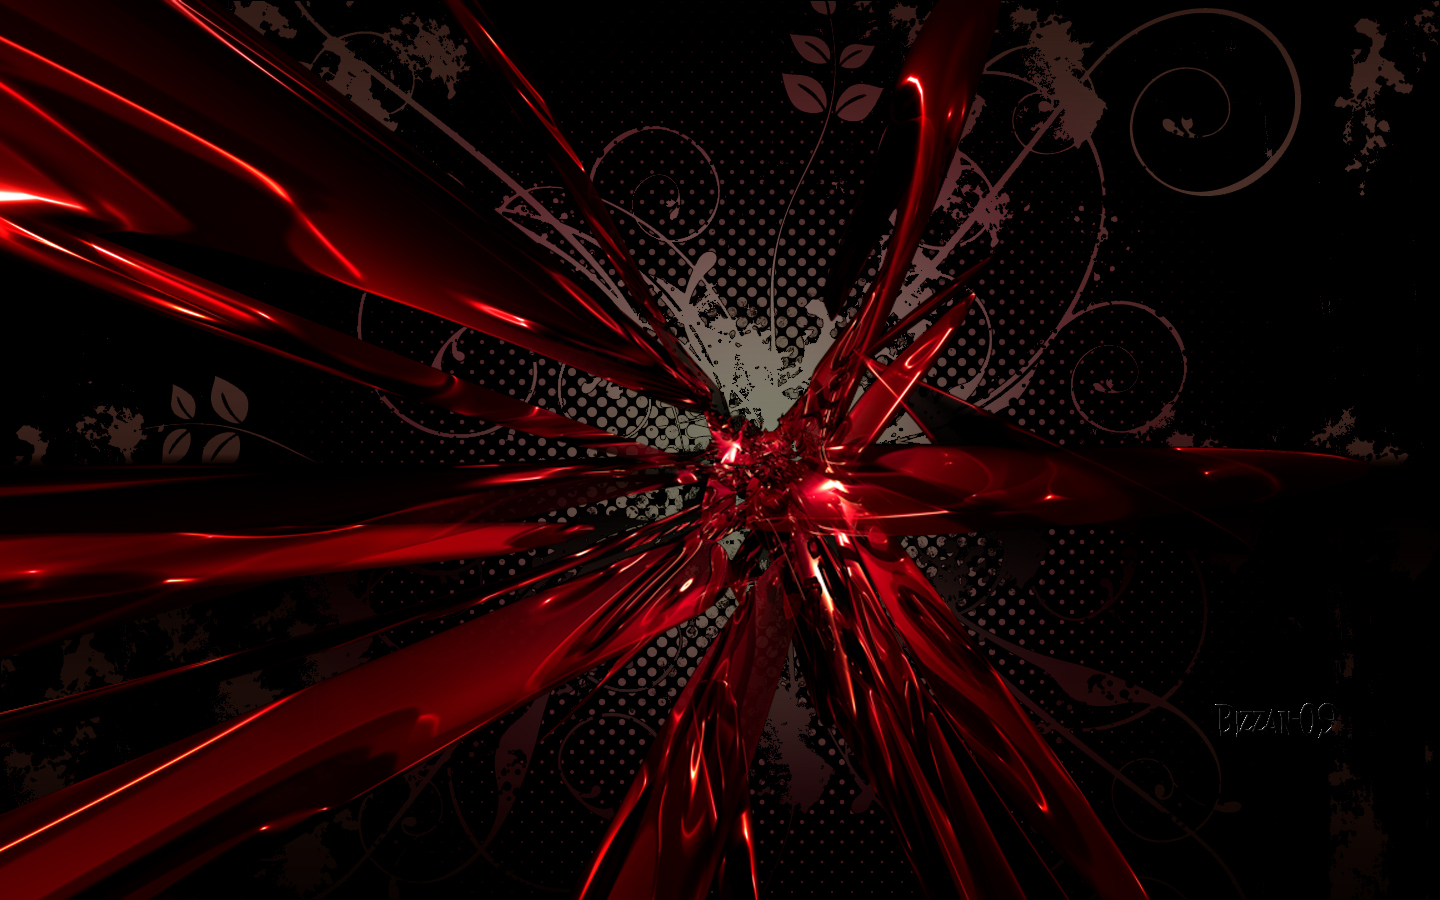 hd wallpapers 1080p abstract - photo #27